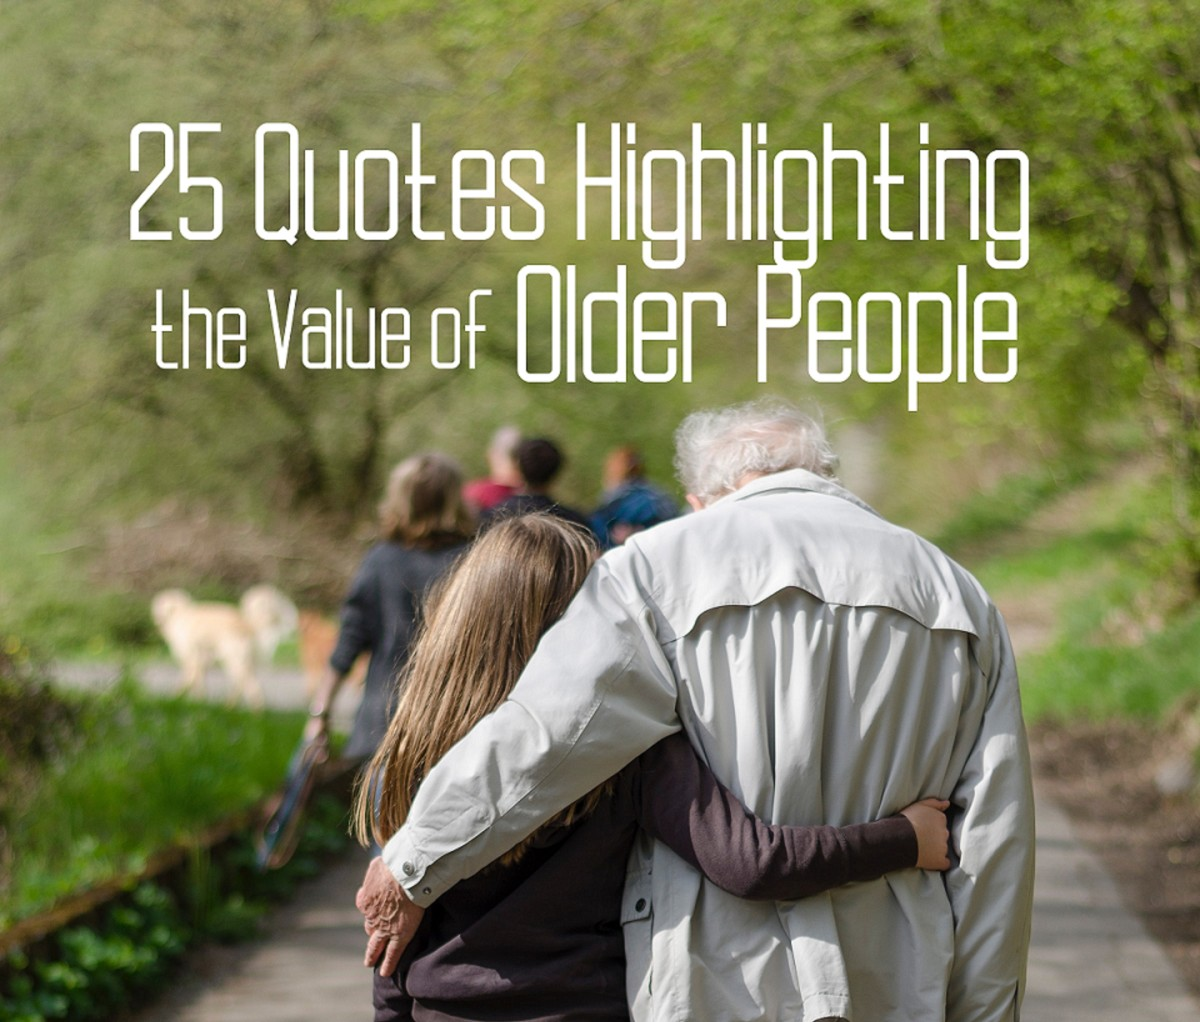 25 Quotes Highlighting the Value of Older People